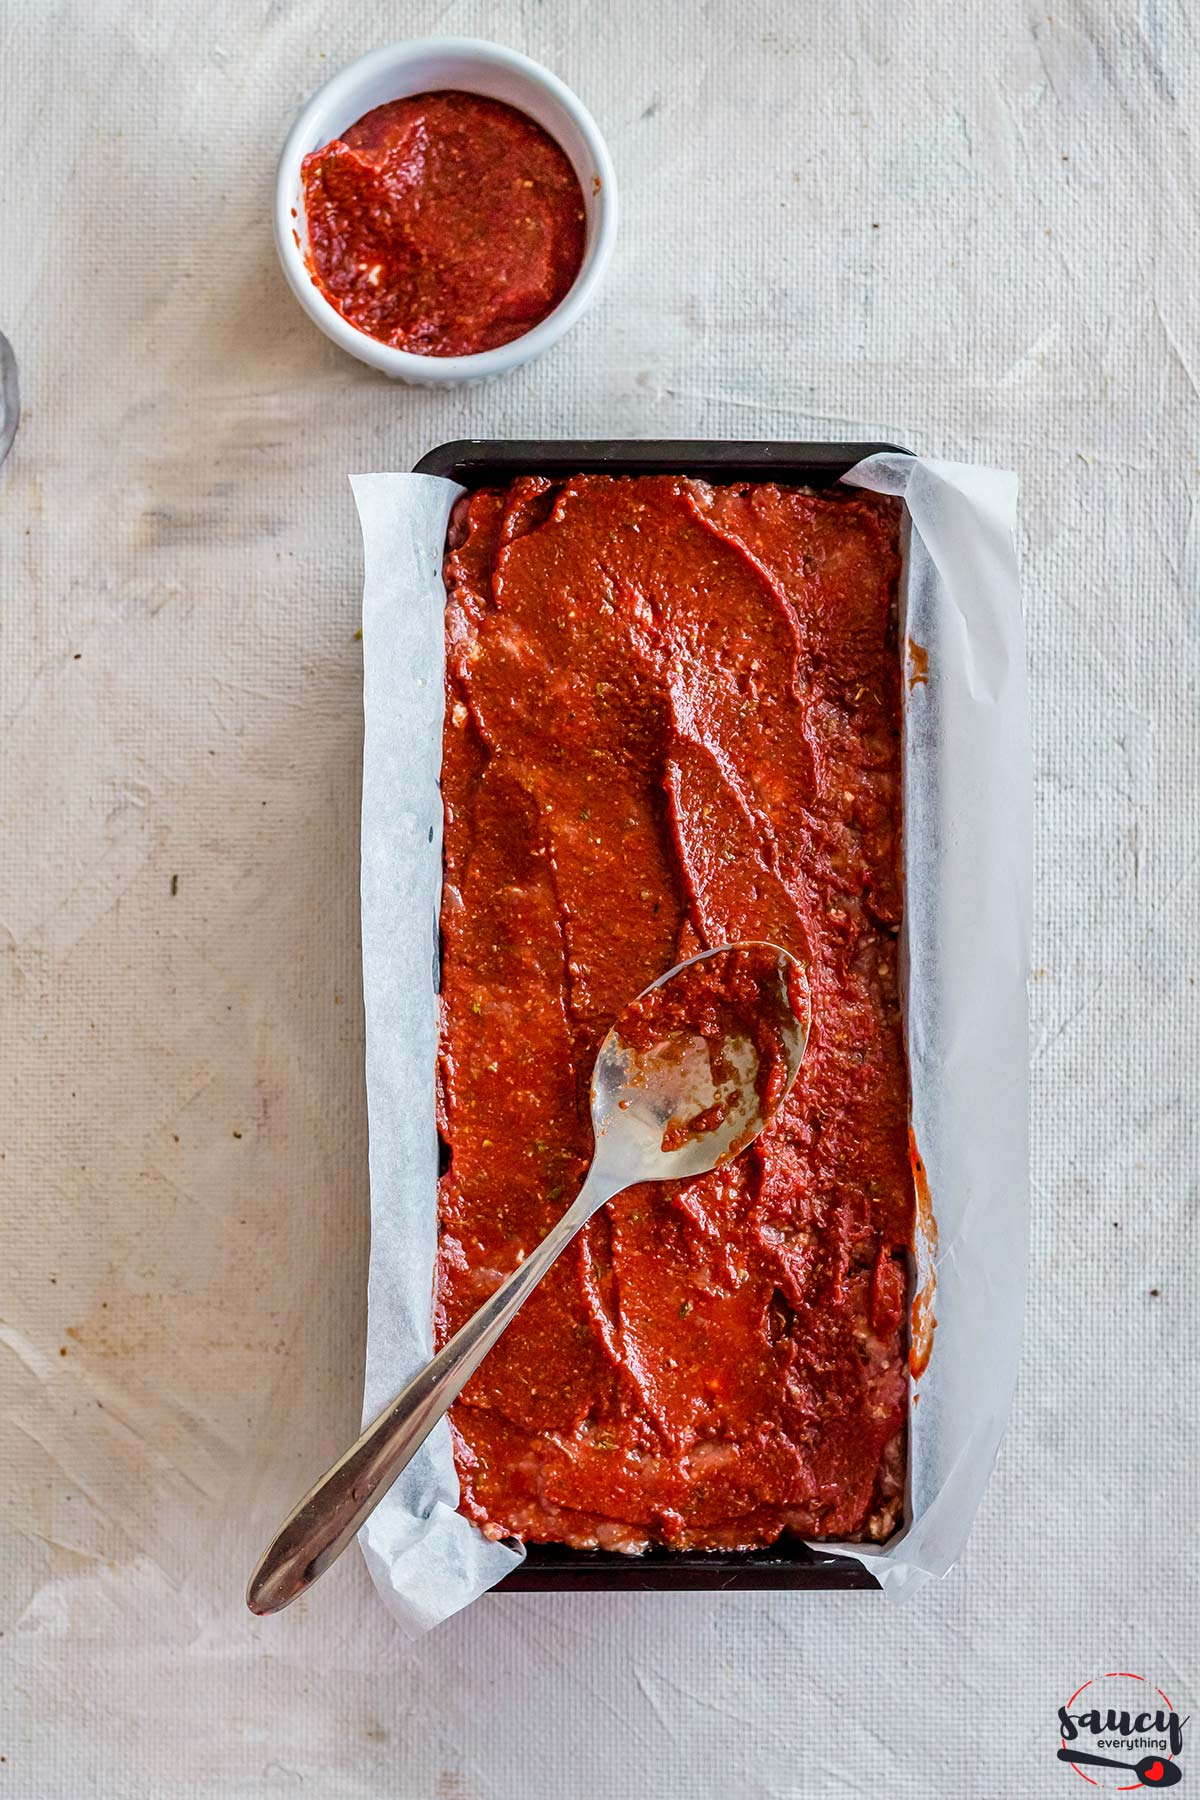 Spreading meatloaf glaze on meatloaf with a spoon